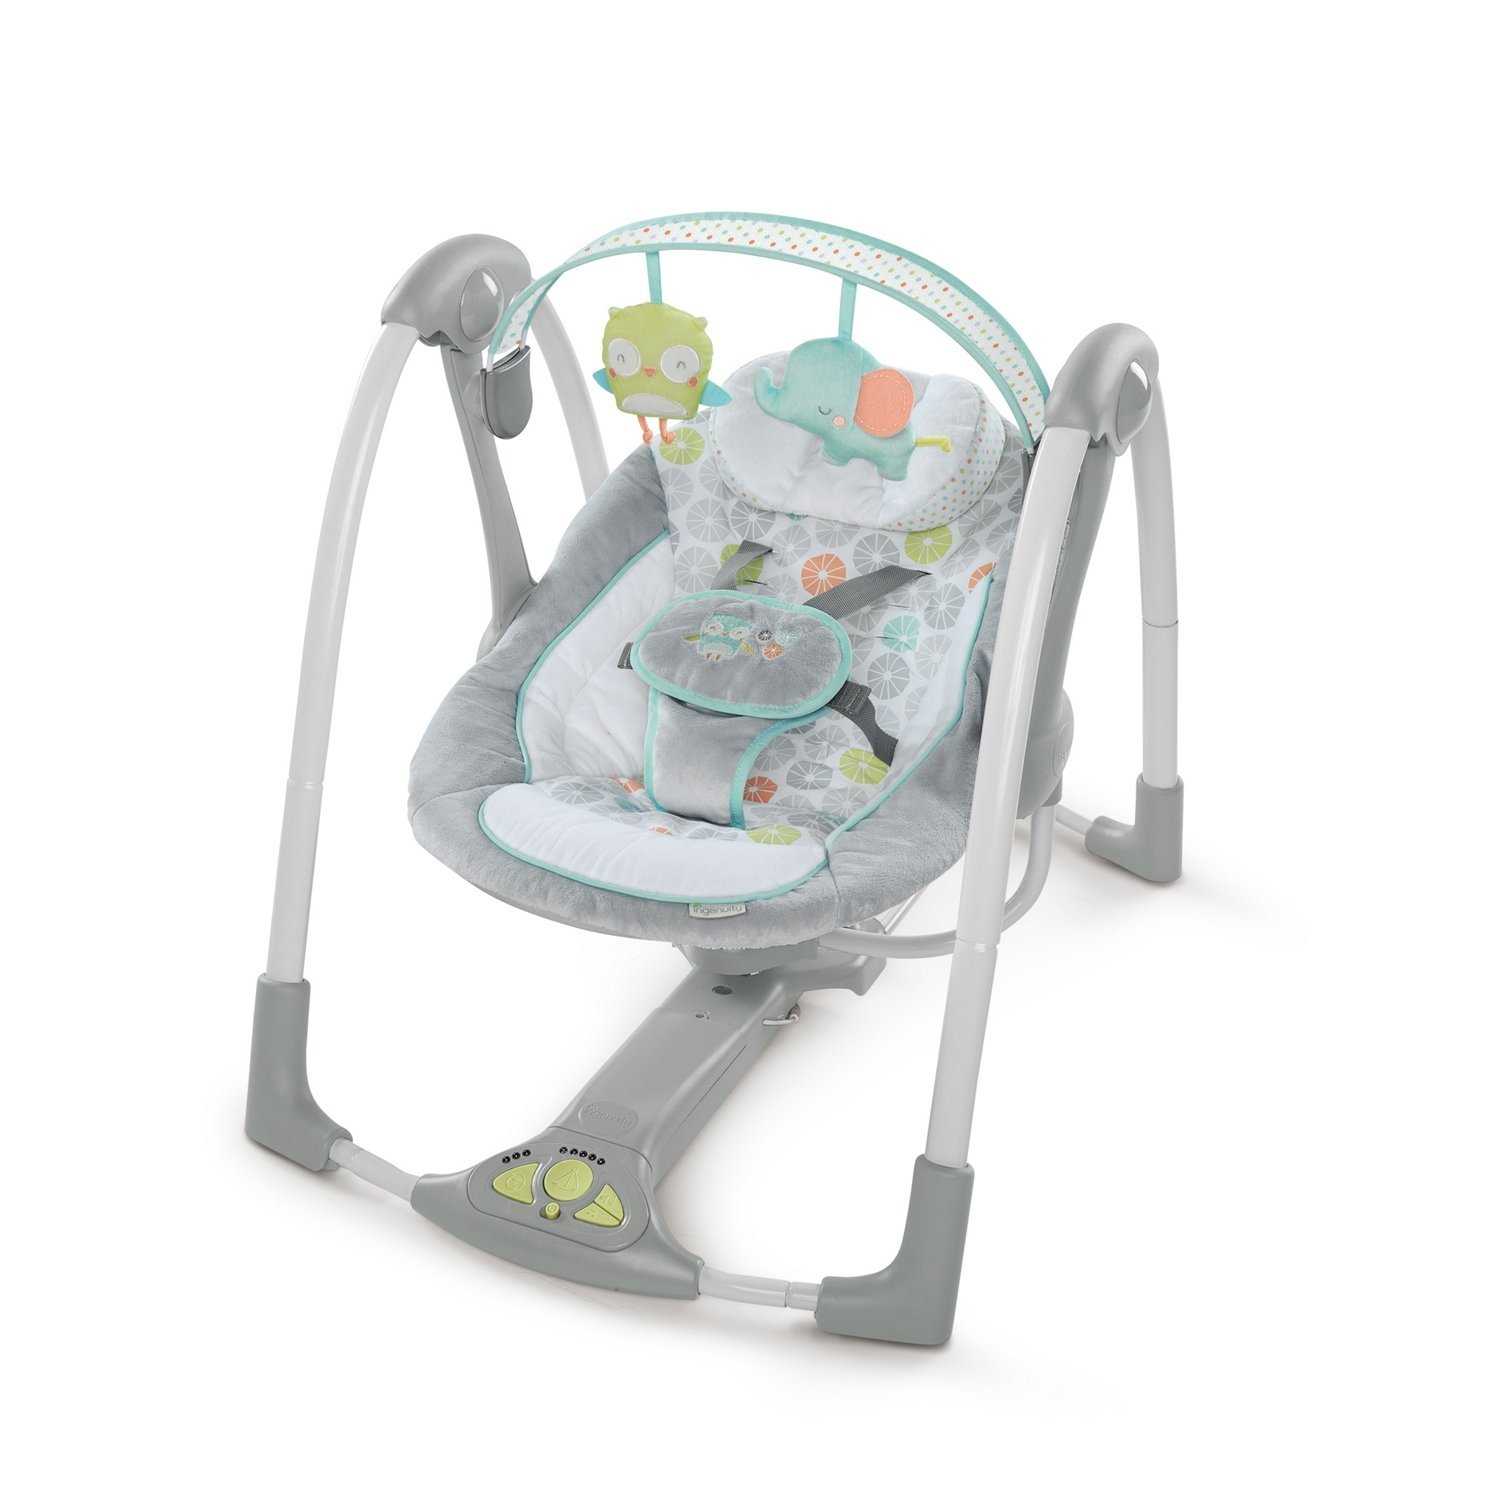 amazon.com : ingenuity swing u0027n go portable baby swings, hugs u0026 hoots XBJTKGQ